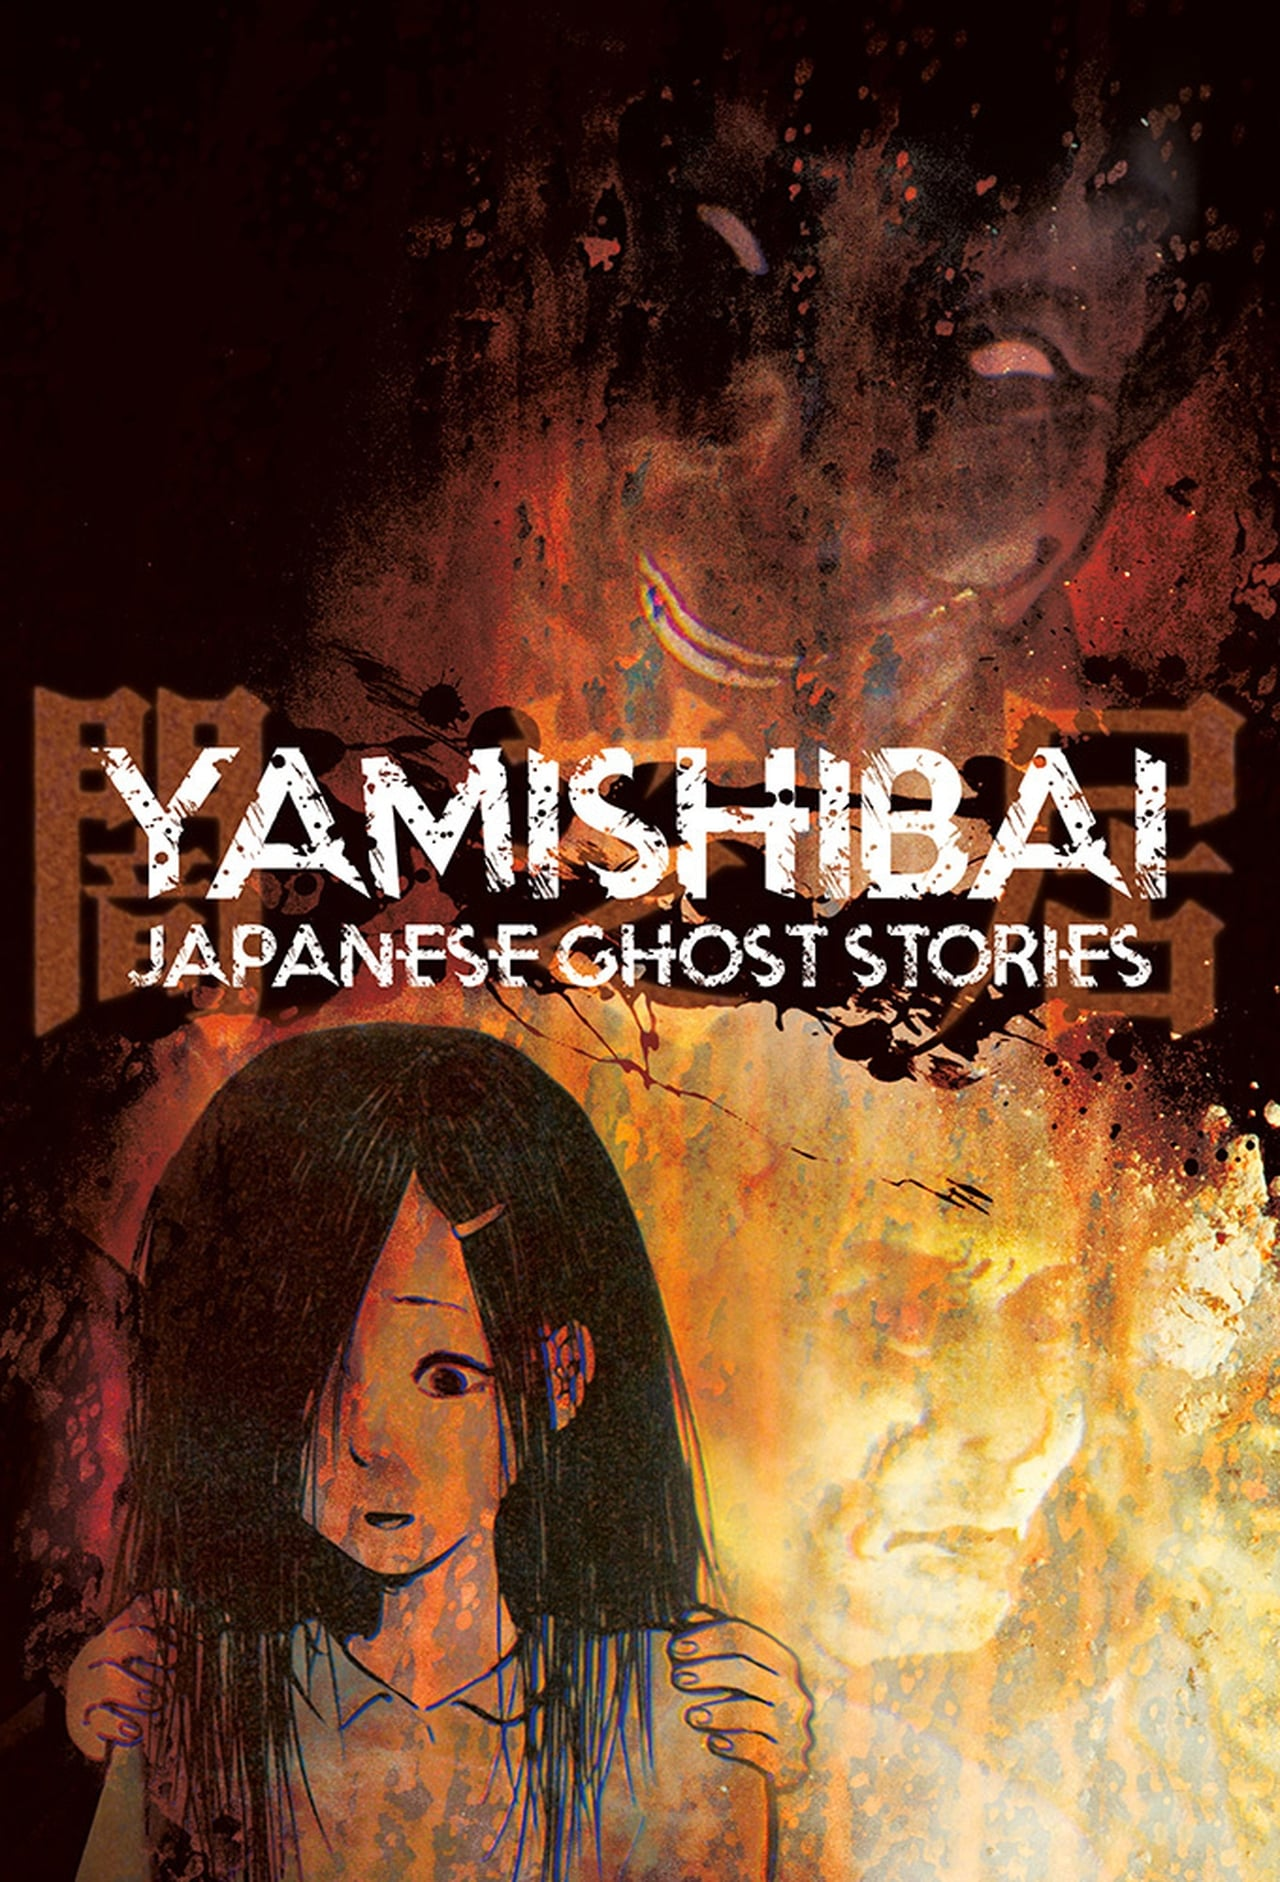 Putlocker Yamishibai: Japanese Ghost Stories Season 3 (2016)